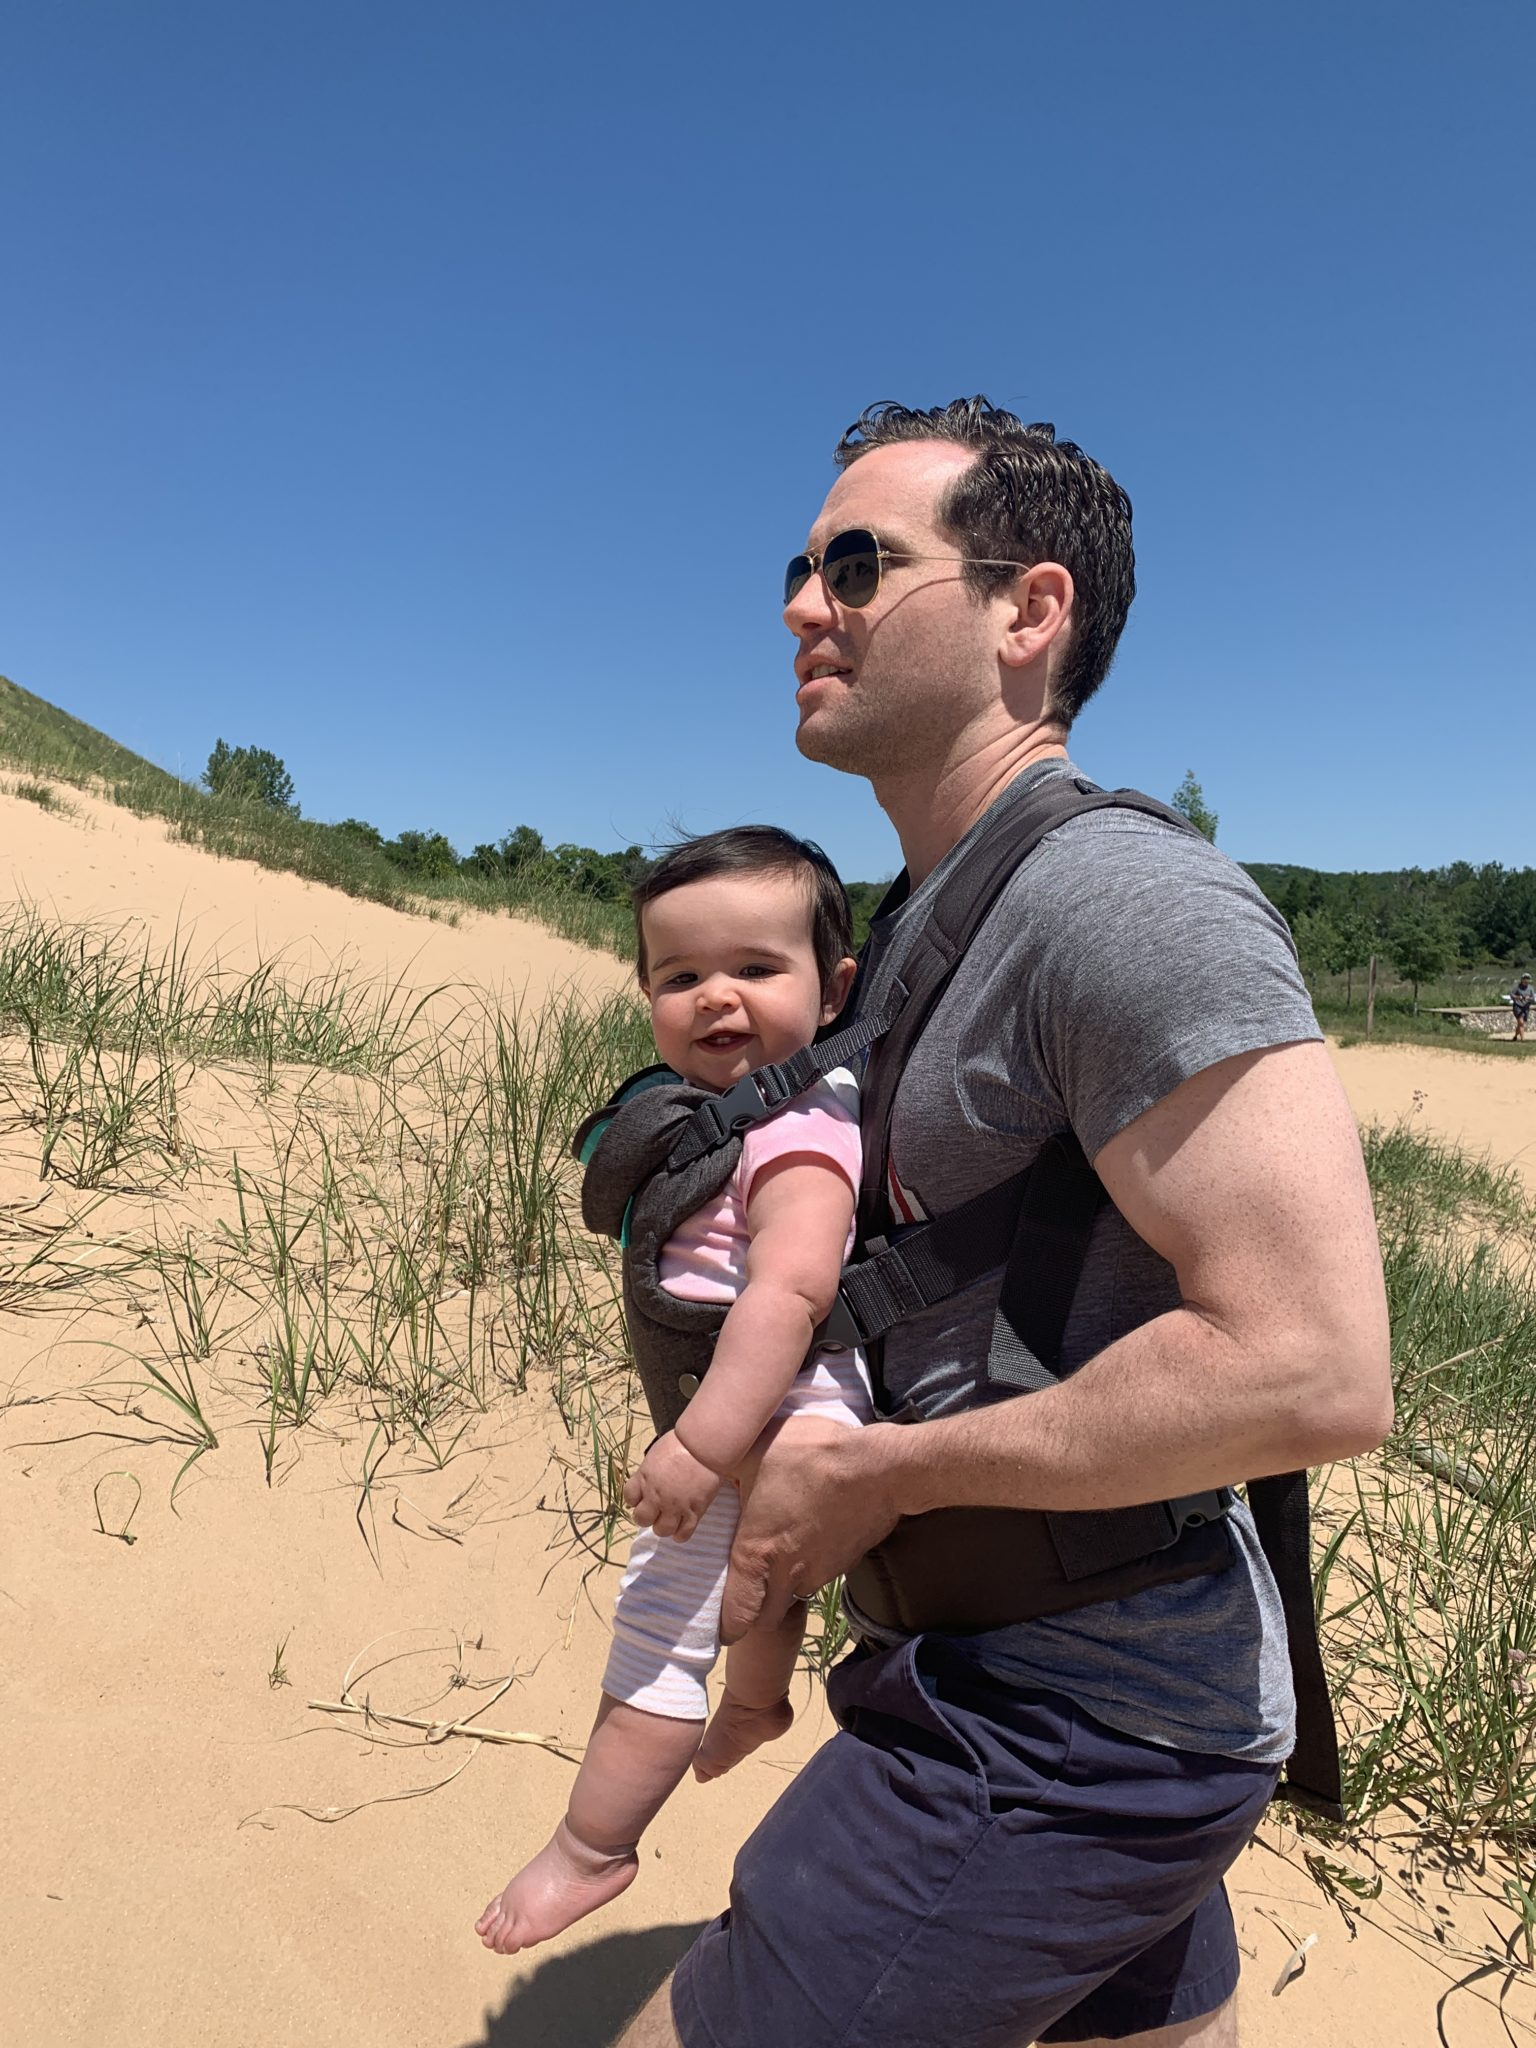 Traverse City by popular Chicago travel blog, Glass of Glam: image of a dad carrying his baby in a baby carrier while walking on a sand dune.